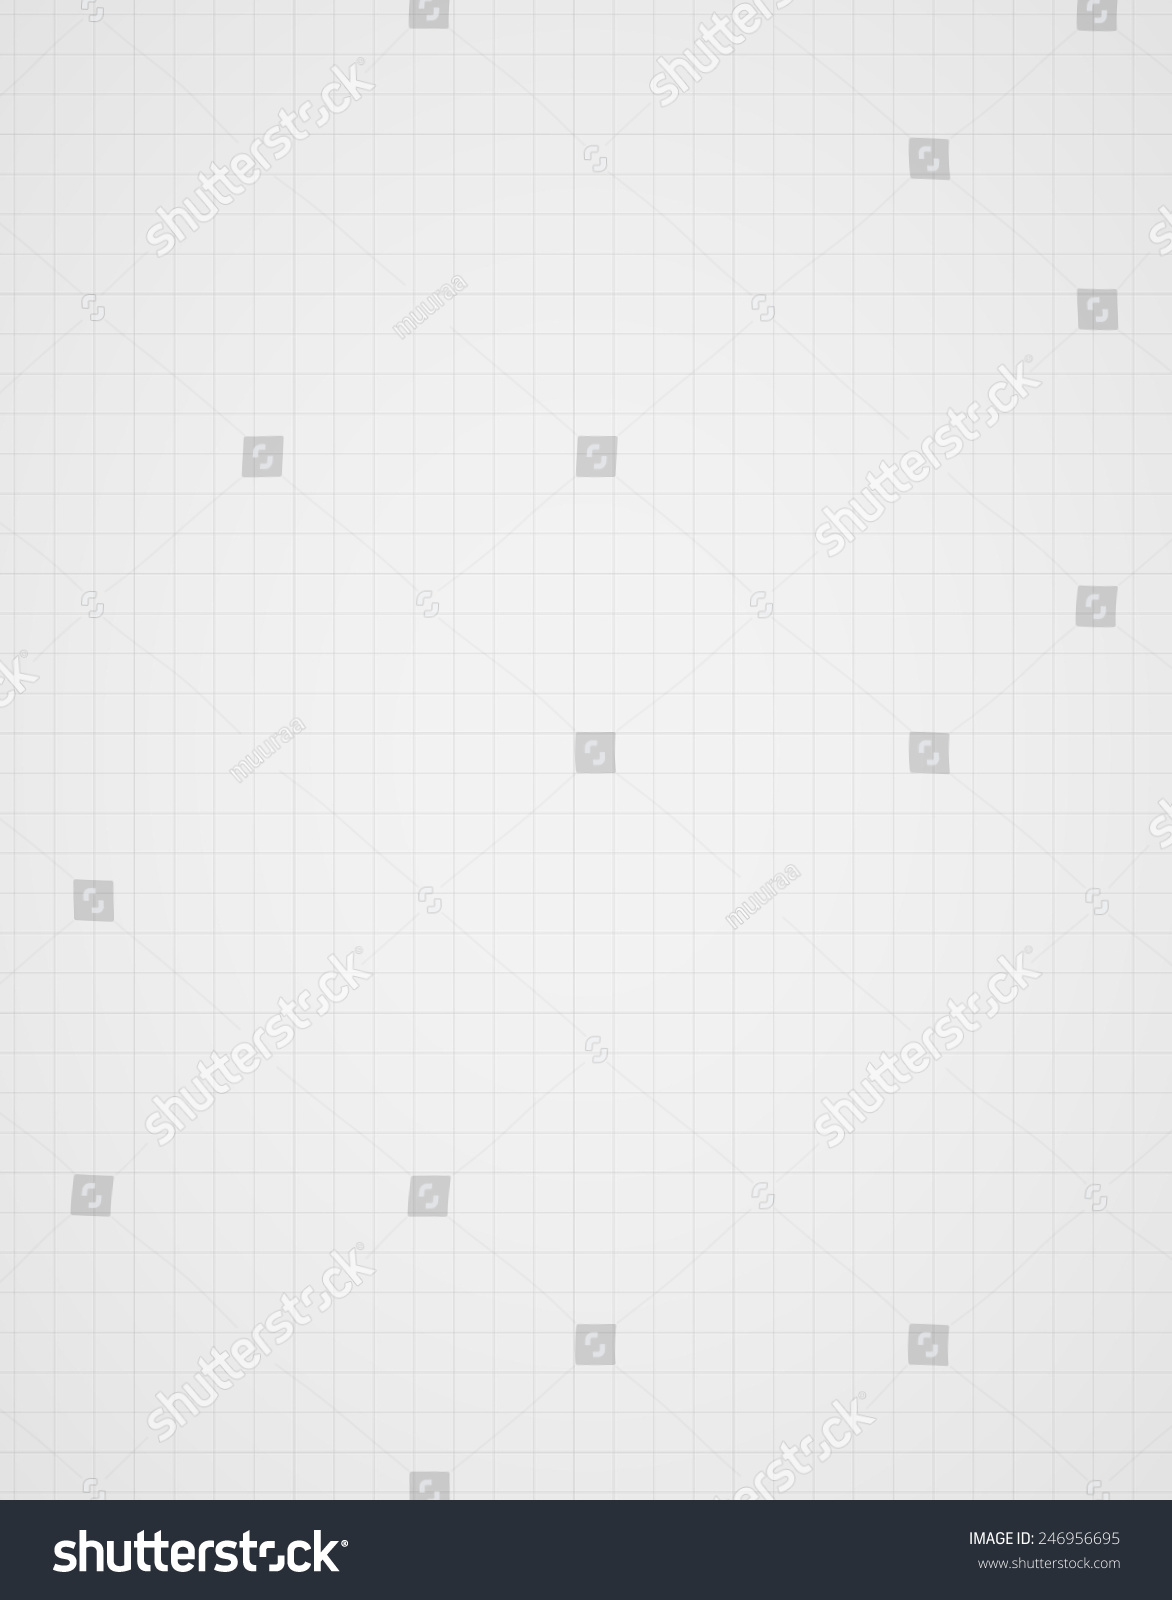 graph paper background many small squares stock vector royalty free